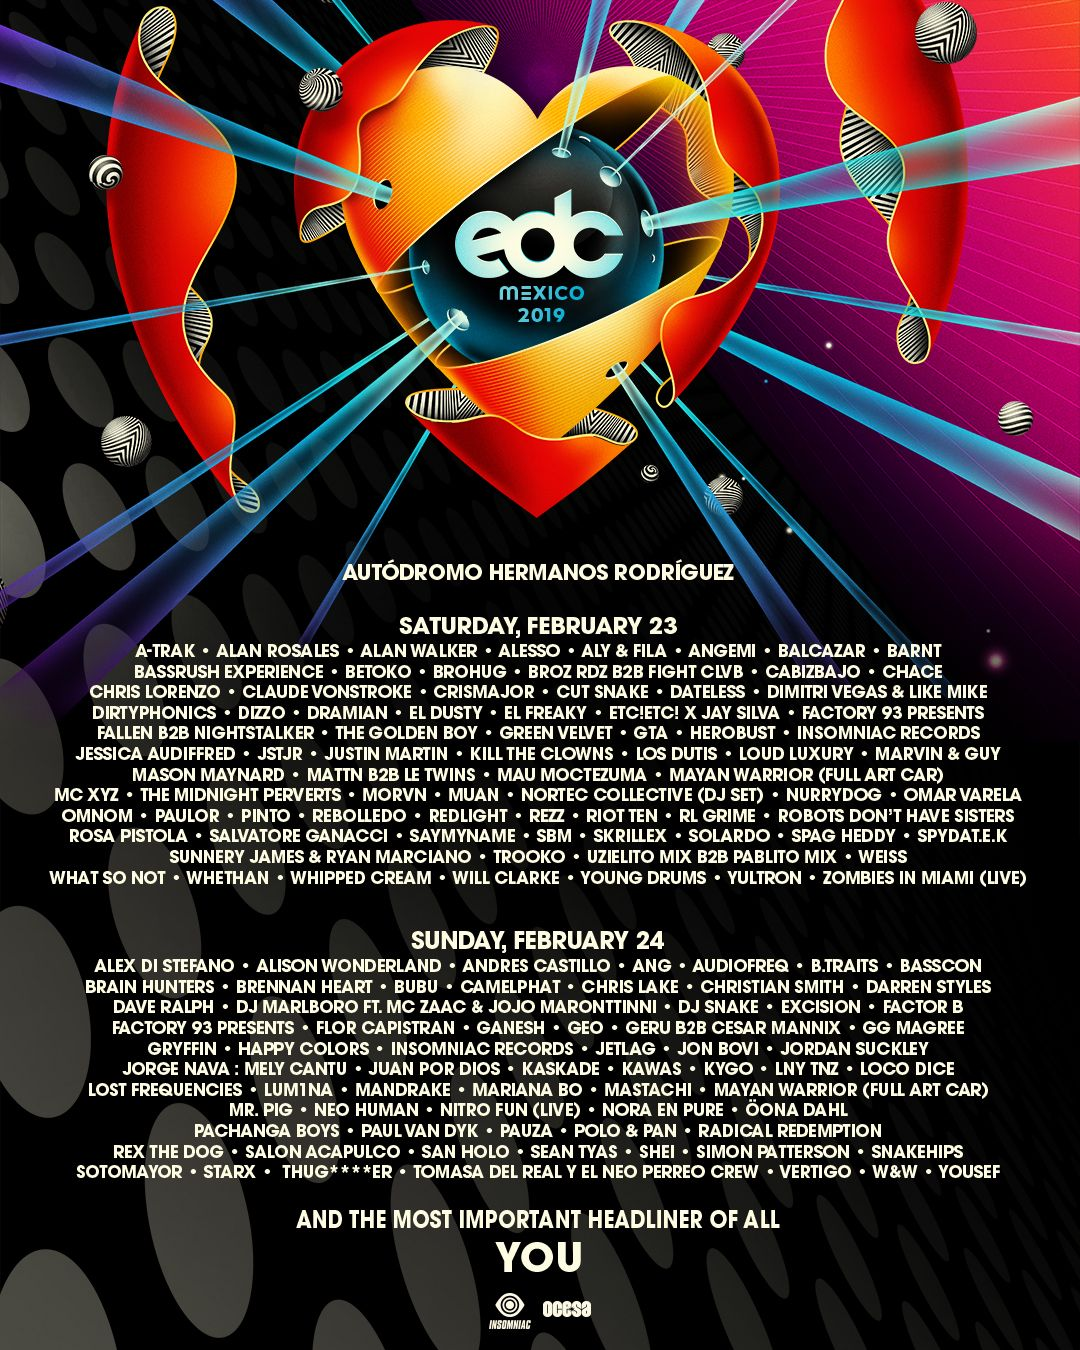 EDC Mexico 2109 Lineup by Day